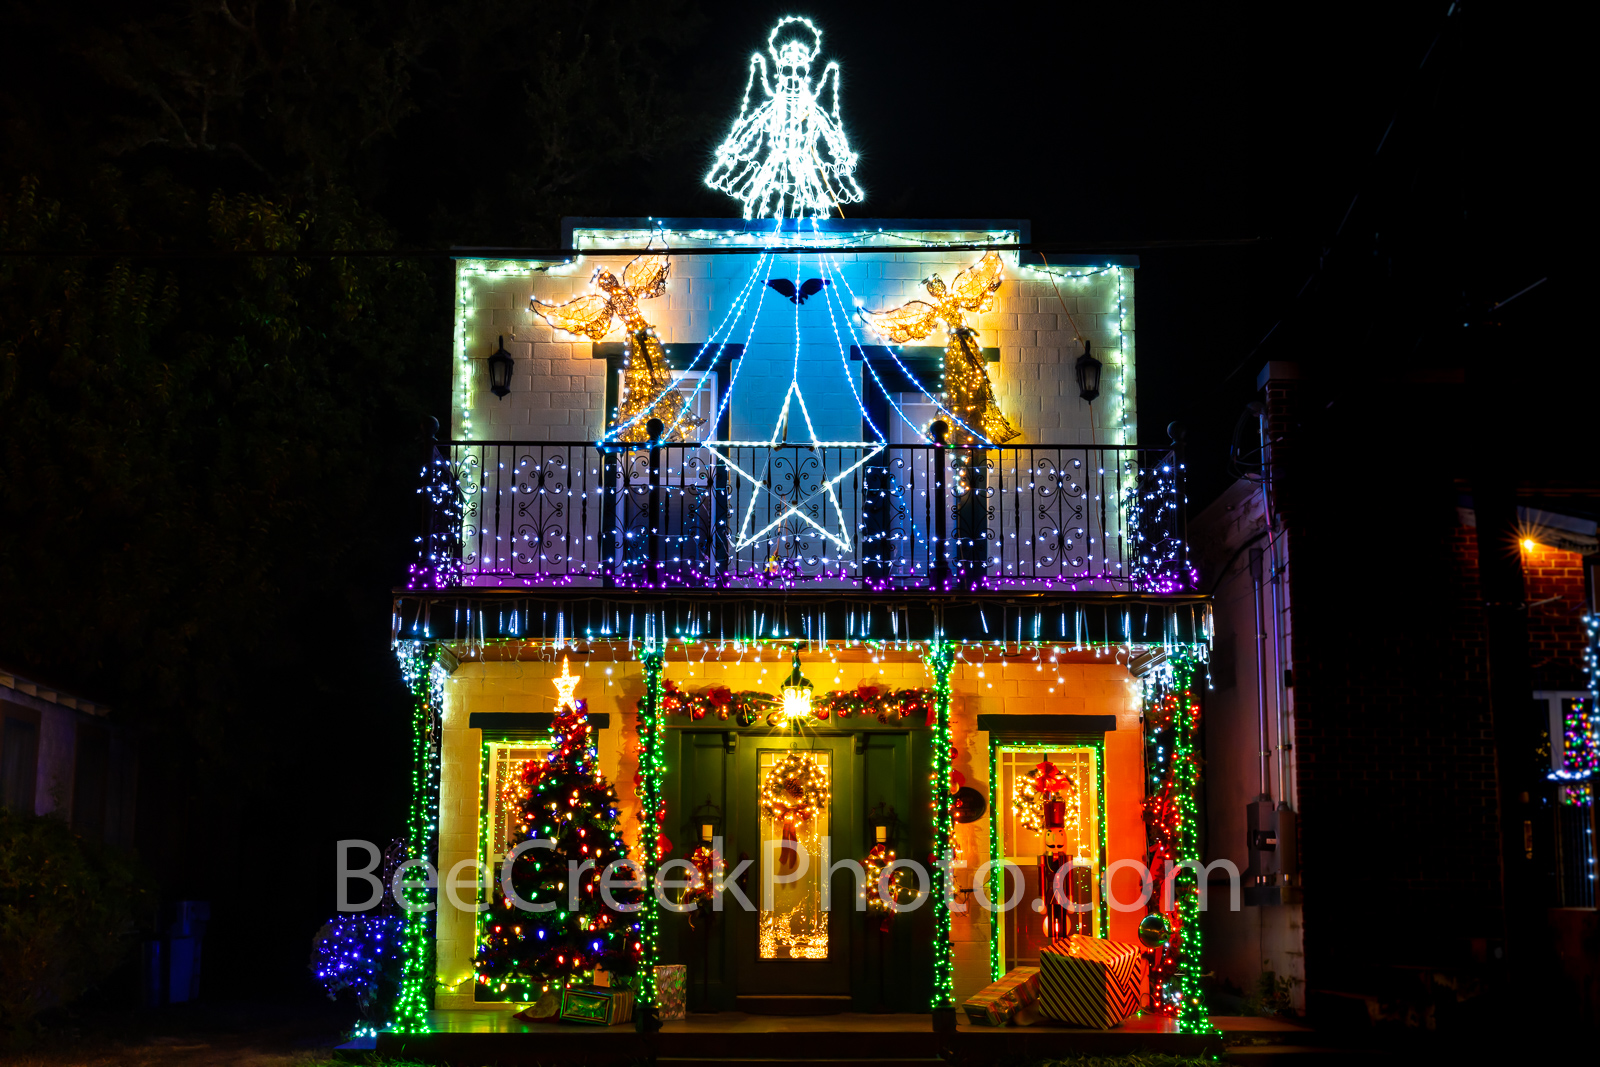 Christmas Decorations in Johnson City - This shop was located across the street from the Blanco Country courthouse in Johnson...